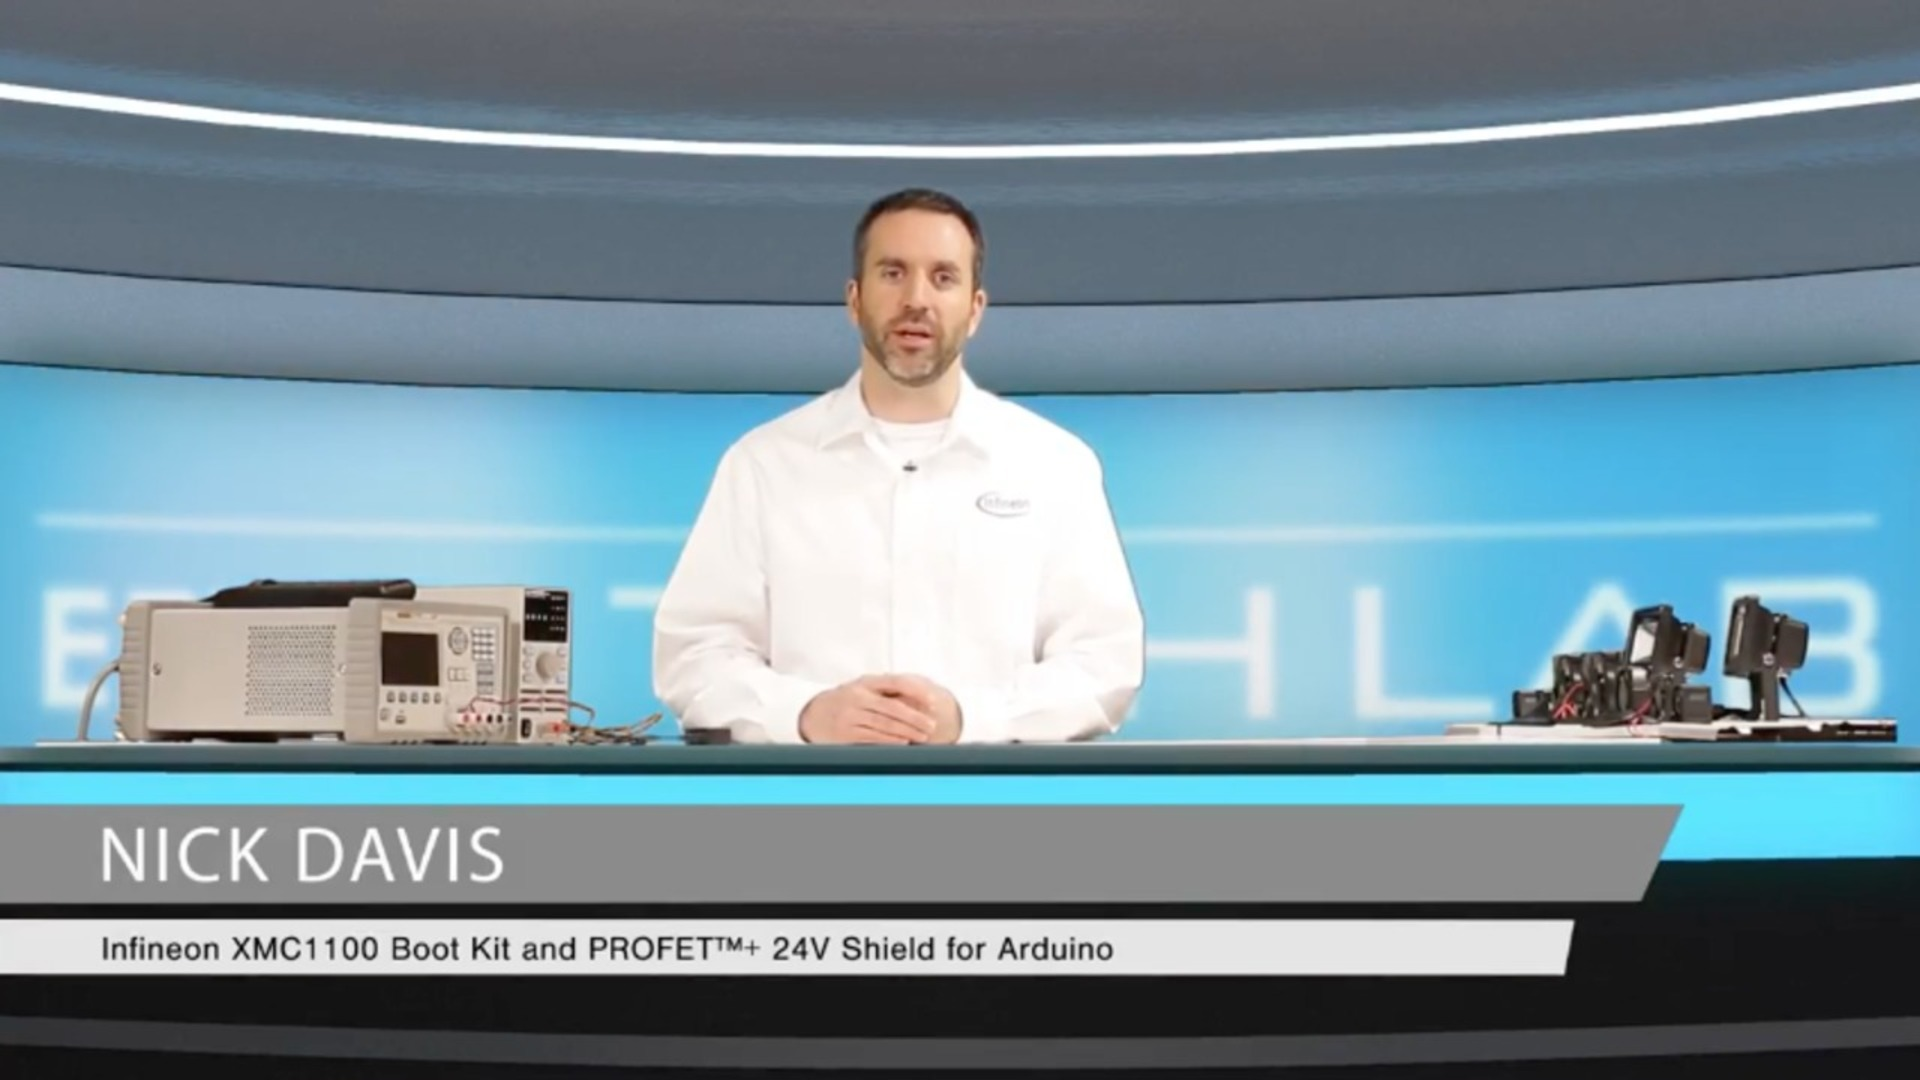 Watch to learn more: Infineon XMC1100 Boot Kit and PROFET™+ 24V Shield for Arduino – Part 1